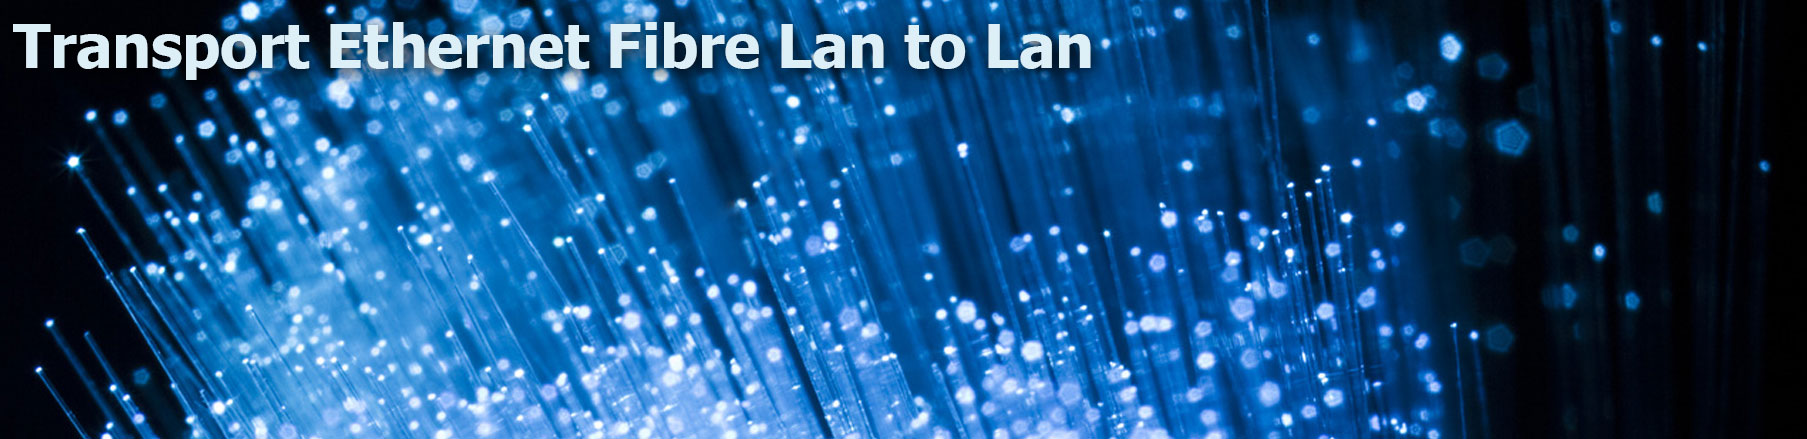 transport-ethernet-fibre-lan-to-lan